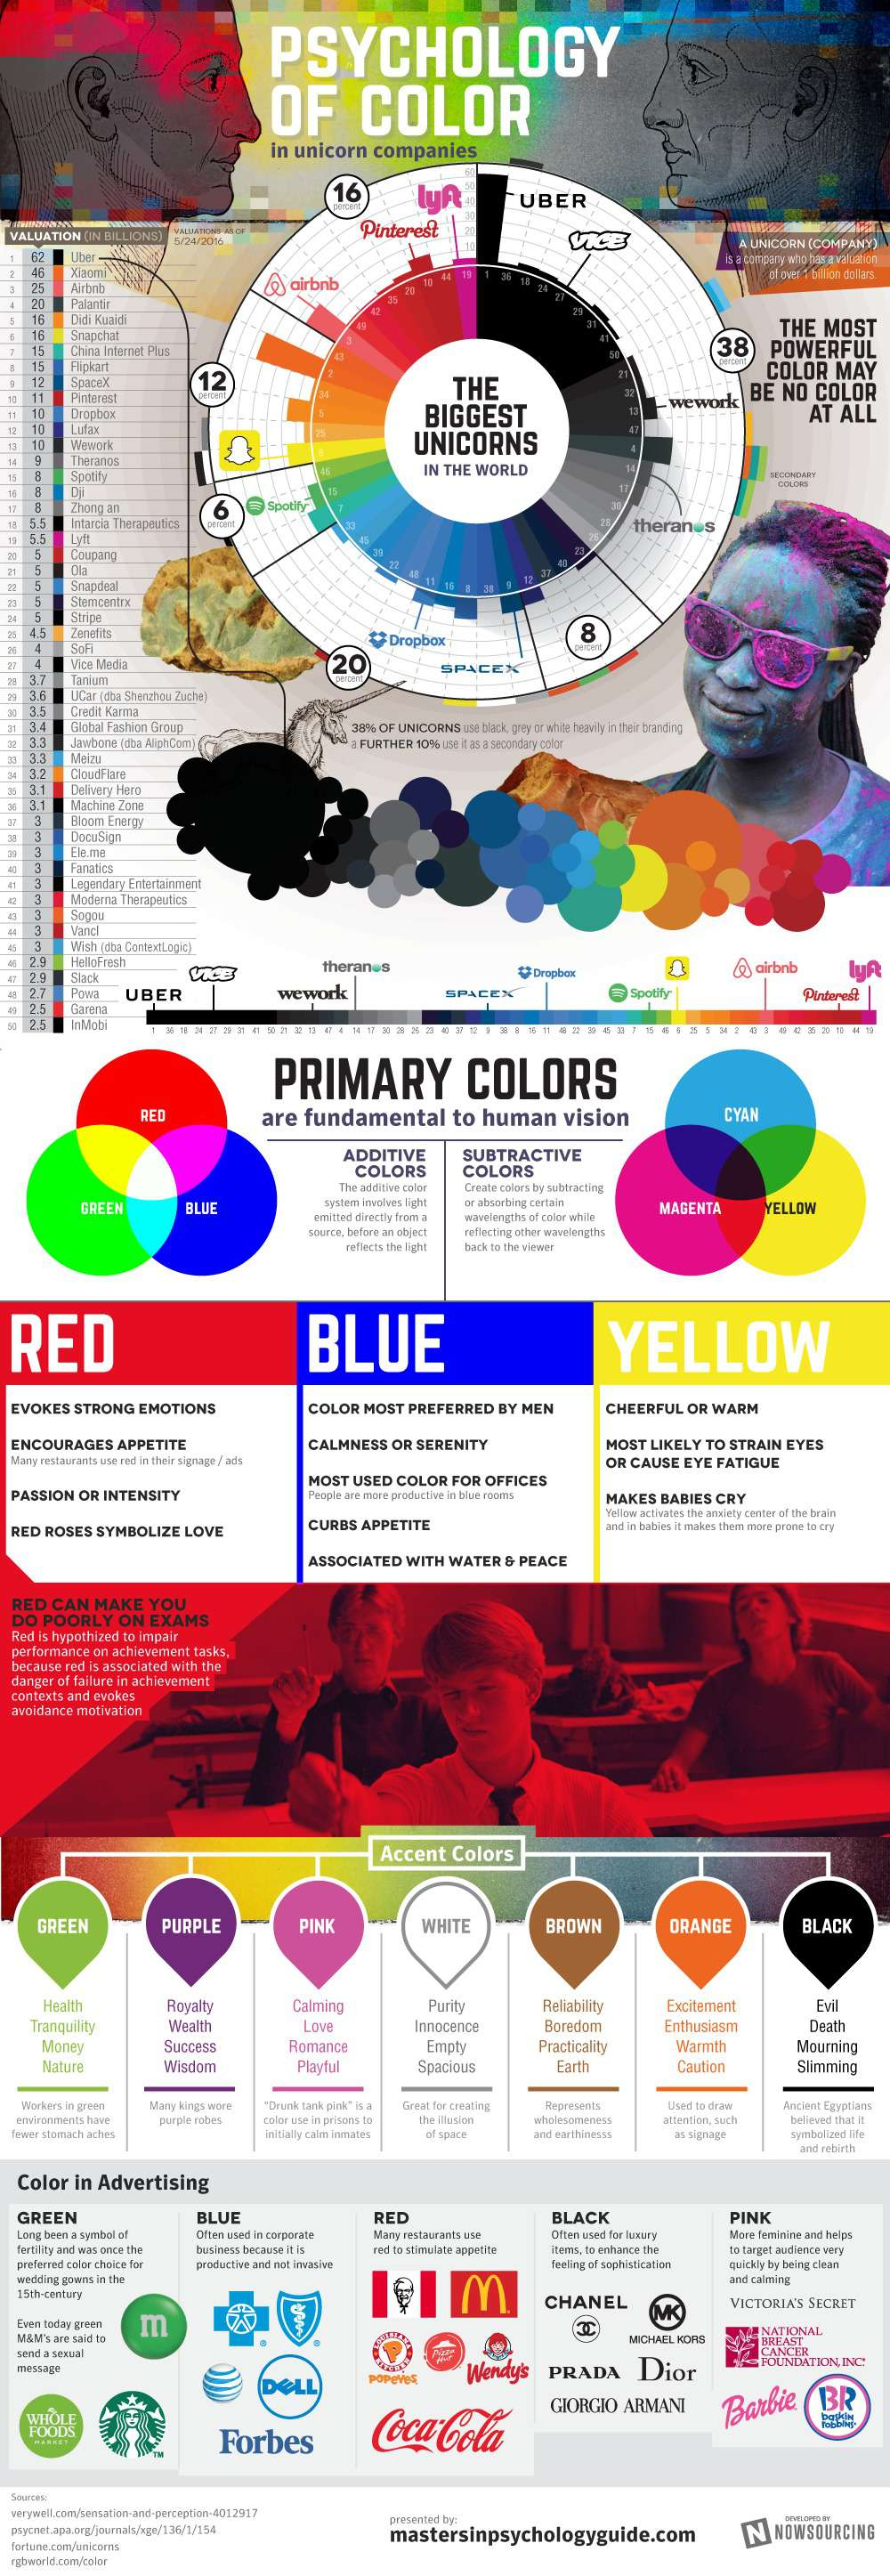 Psychology of Color in Unicorn Companies  - MastersinPsychologyGuide.com - Infographic